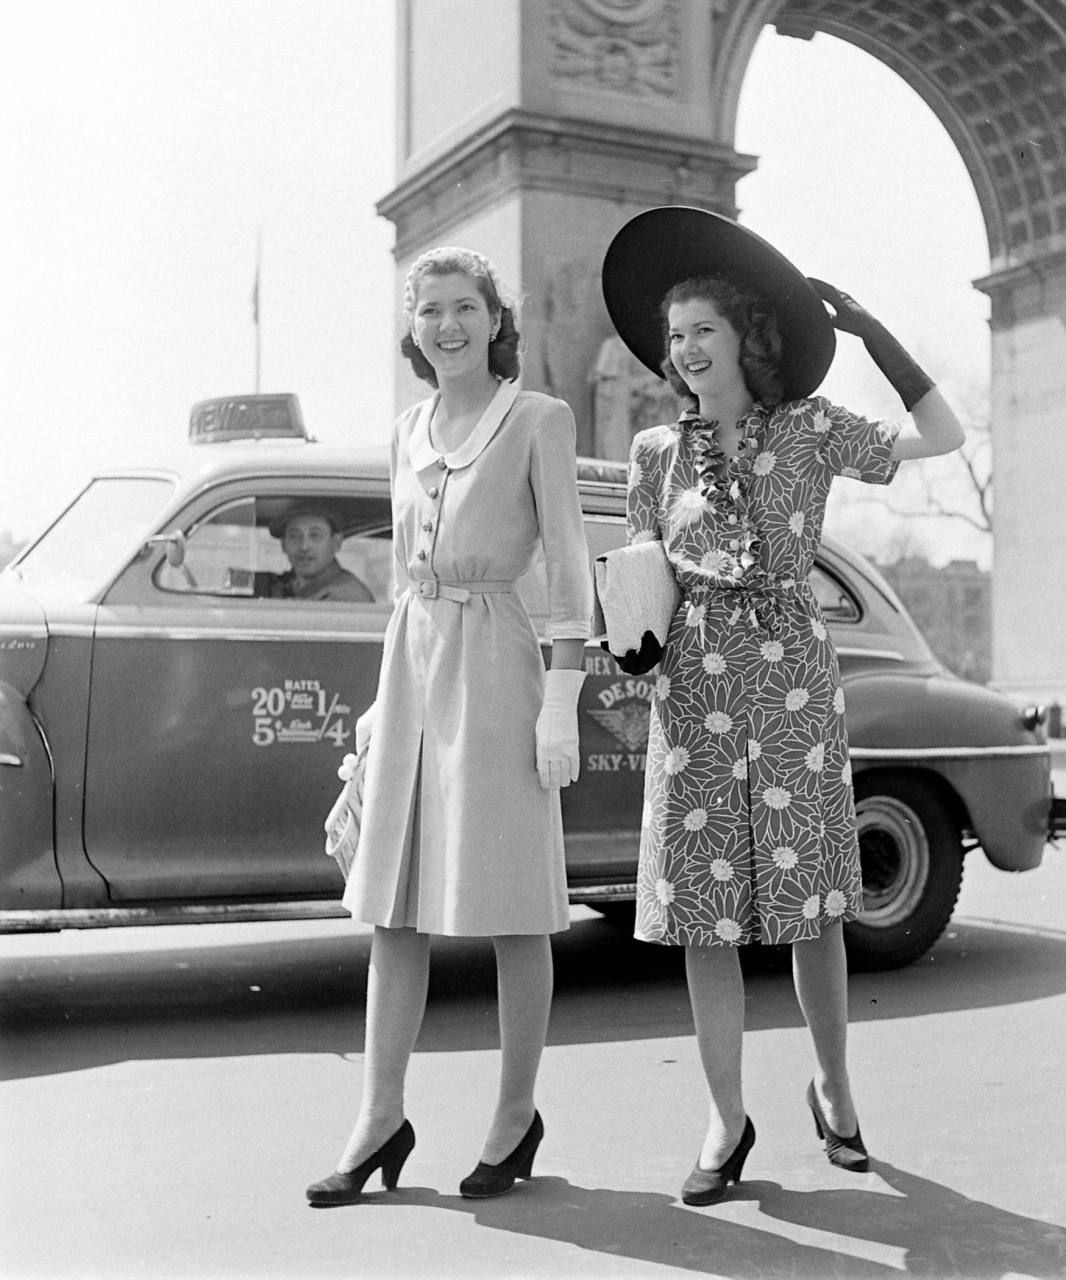 1940s--Washington Square, NY. Taxi fares, posted on cab door, are ...